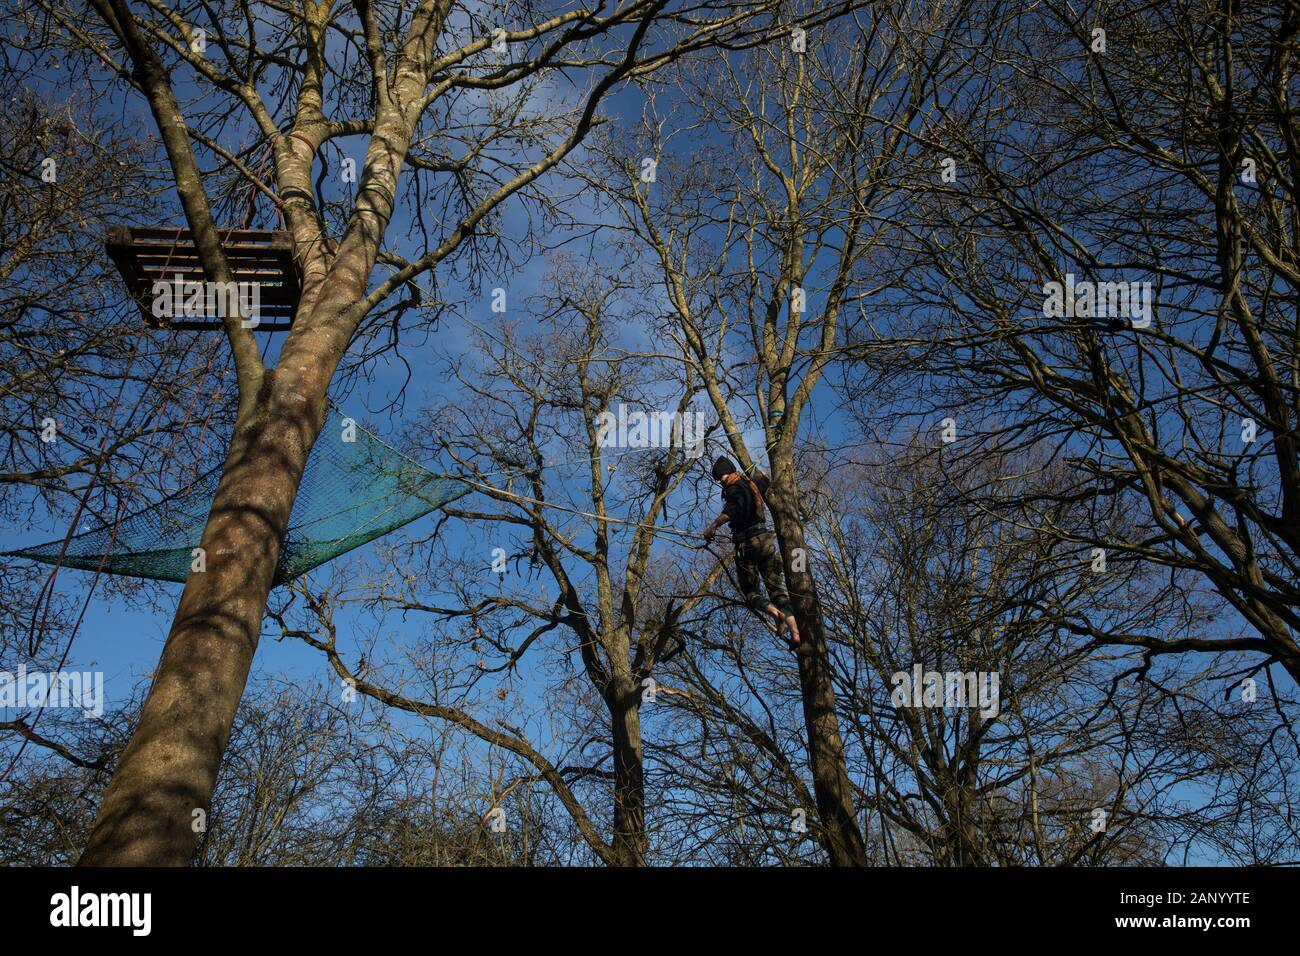 Harefield, UK. 19 January, 2020. A tree-climbing activist uses a line and safety loop to transfer from one tree to another in the Harvil Road wildlife protection camp. Activists from Extinction Rebellion, Stop HS2 and Save the Colne Valley attending a 'Stand for the Trees' event timed to coincide with tree felling work for HS2 have retaken the camp from which a small group of Save the Colne Valley activists had been evicted by bailiffs acting on behalf of HS2 over the previous week and a half. 108 ancient woodlands are set to be destroyed by the high-speed rail link. Credit: Mark Kerrison/Alam Stock Photo